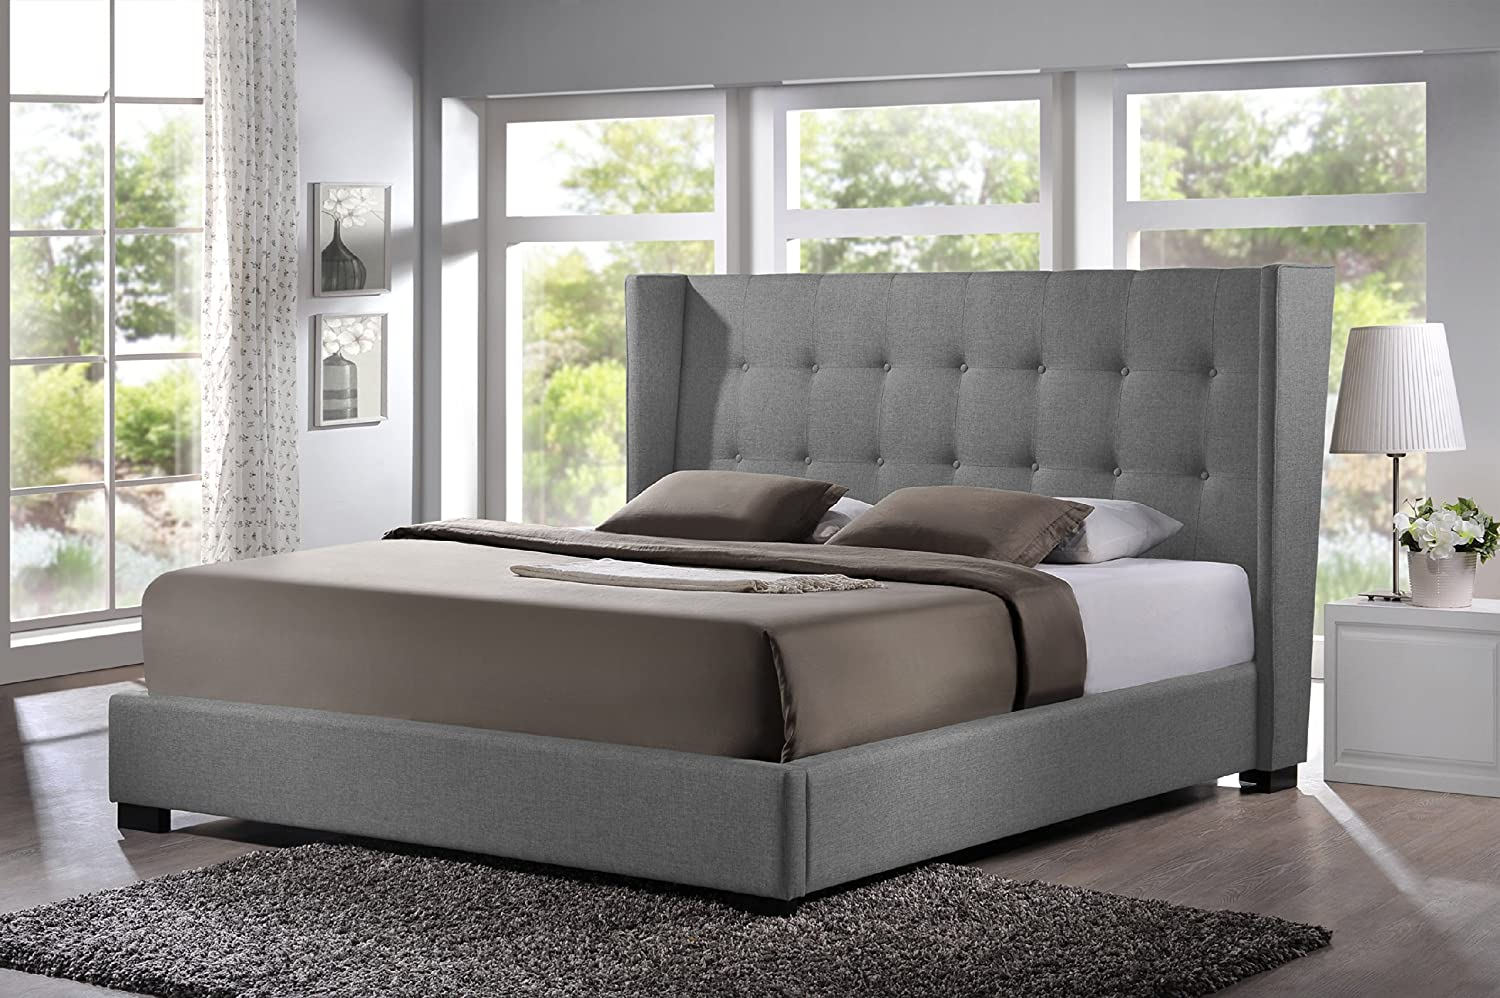 Bed headboard upholstered - Amazon Com Baxton Studio Bbt6386 Queen Grey De800 B 62 Favela Linen Modern Bed With Upholstered Headboard Queen Grey Kitchen Dining